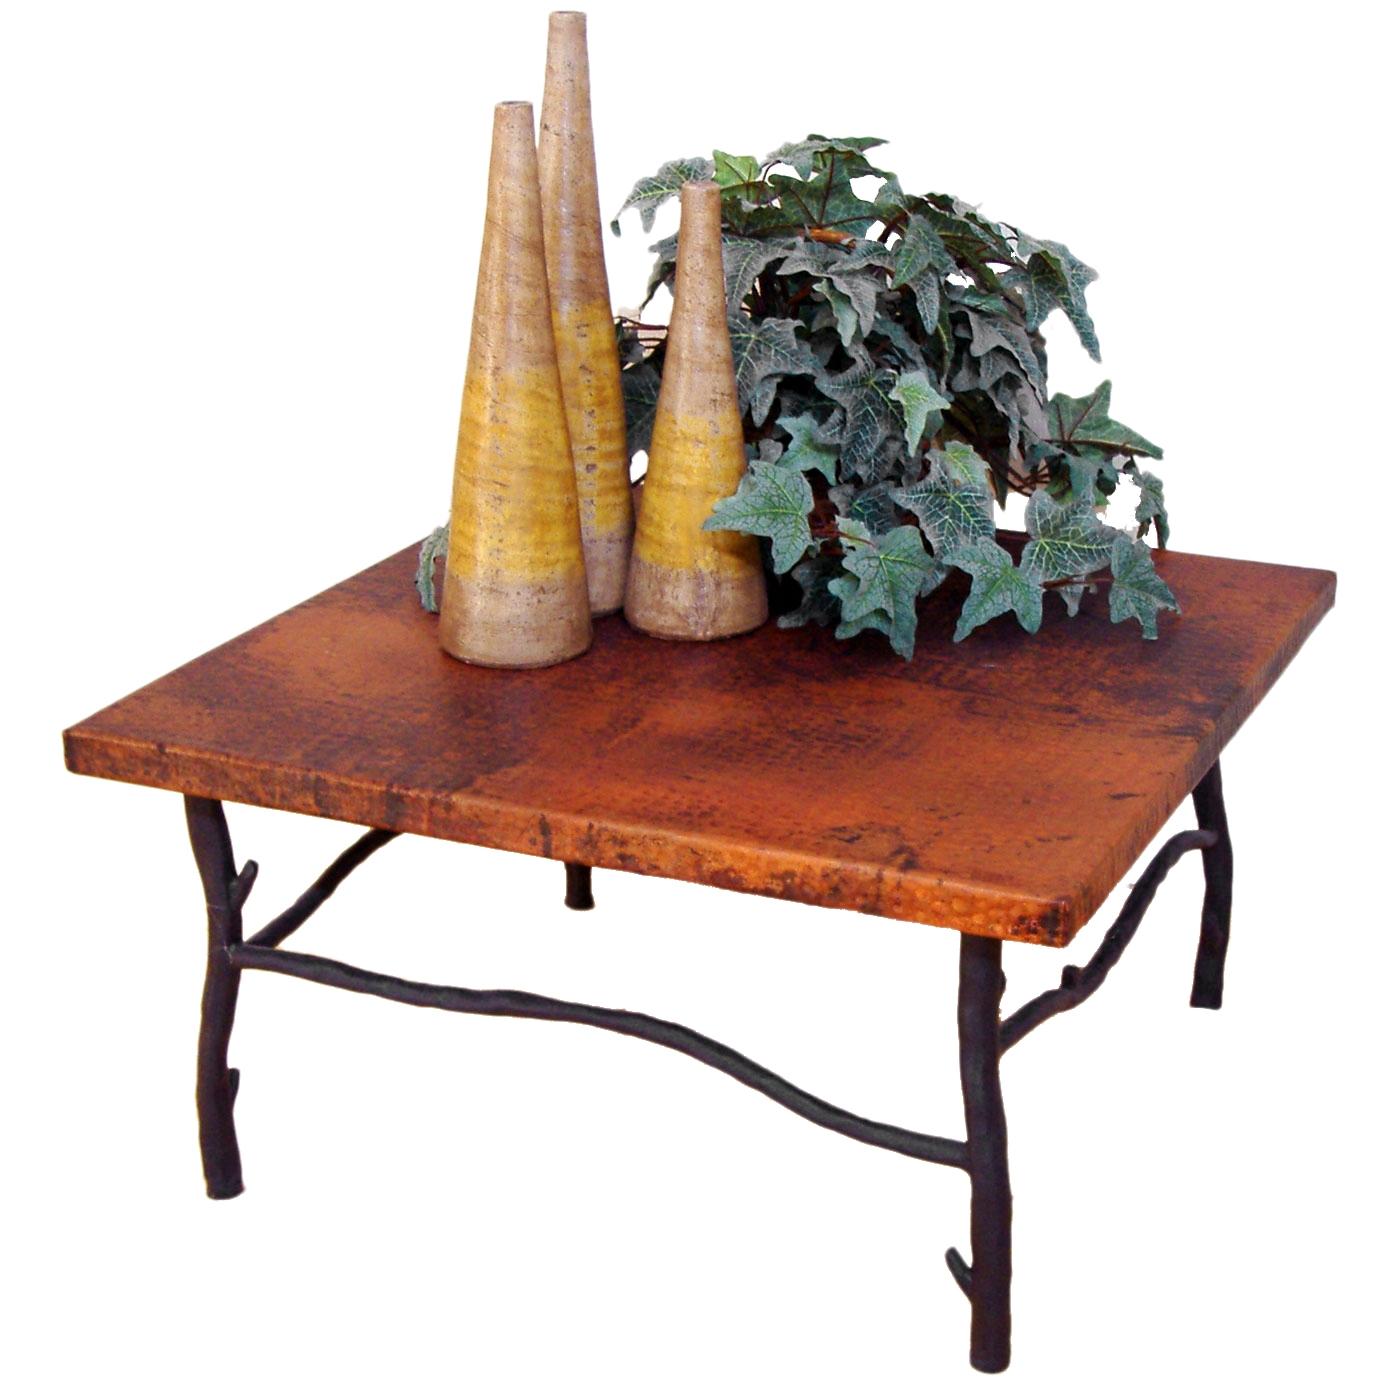 Black Coffee Table Sheffield: Pictured Here Is The South Fork Coffee Table With 36